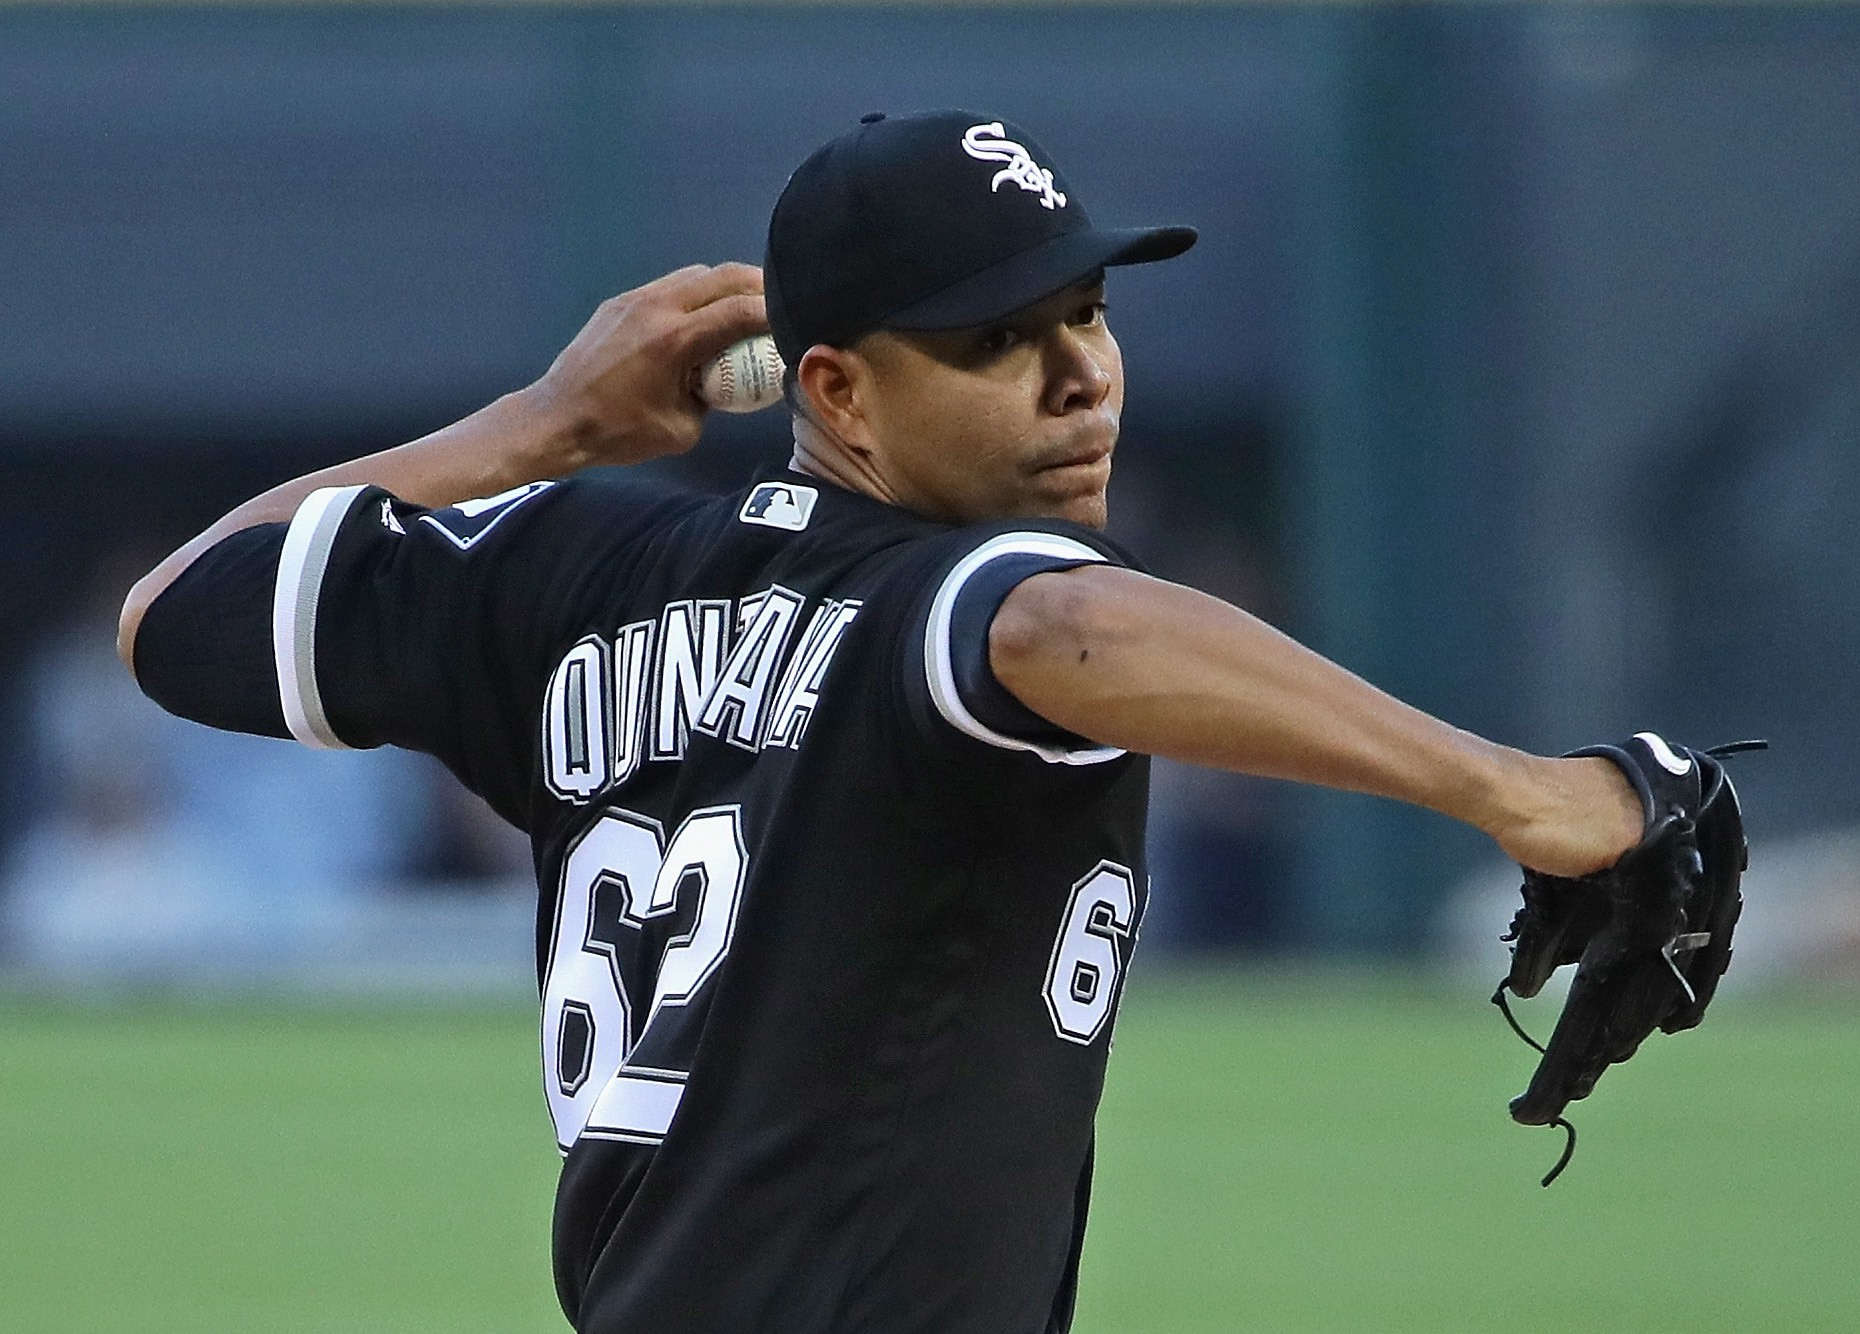 Yankees option eliminated as Cubs splash for Jose Quintana